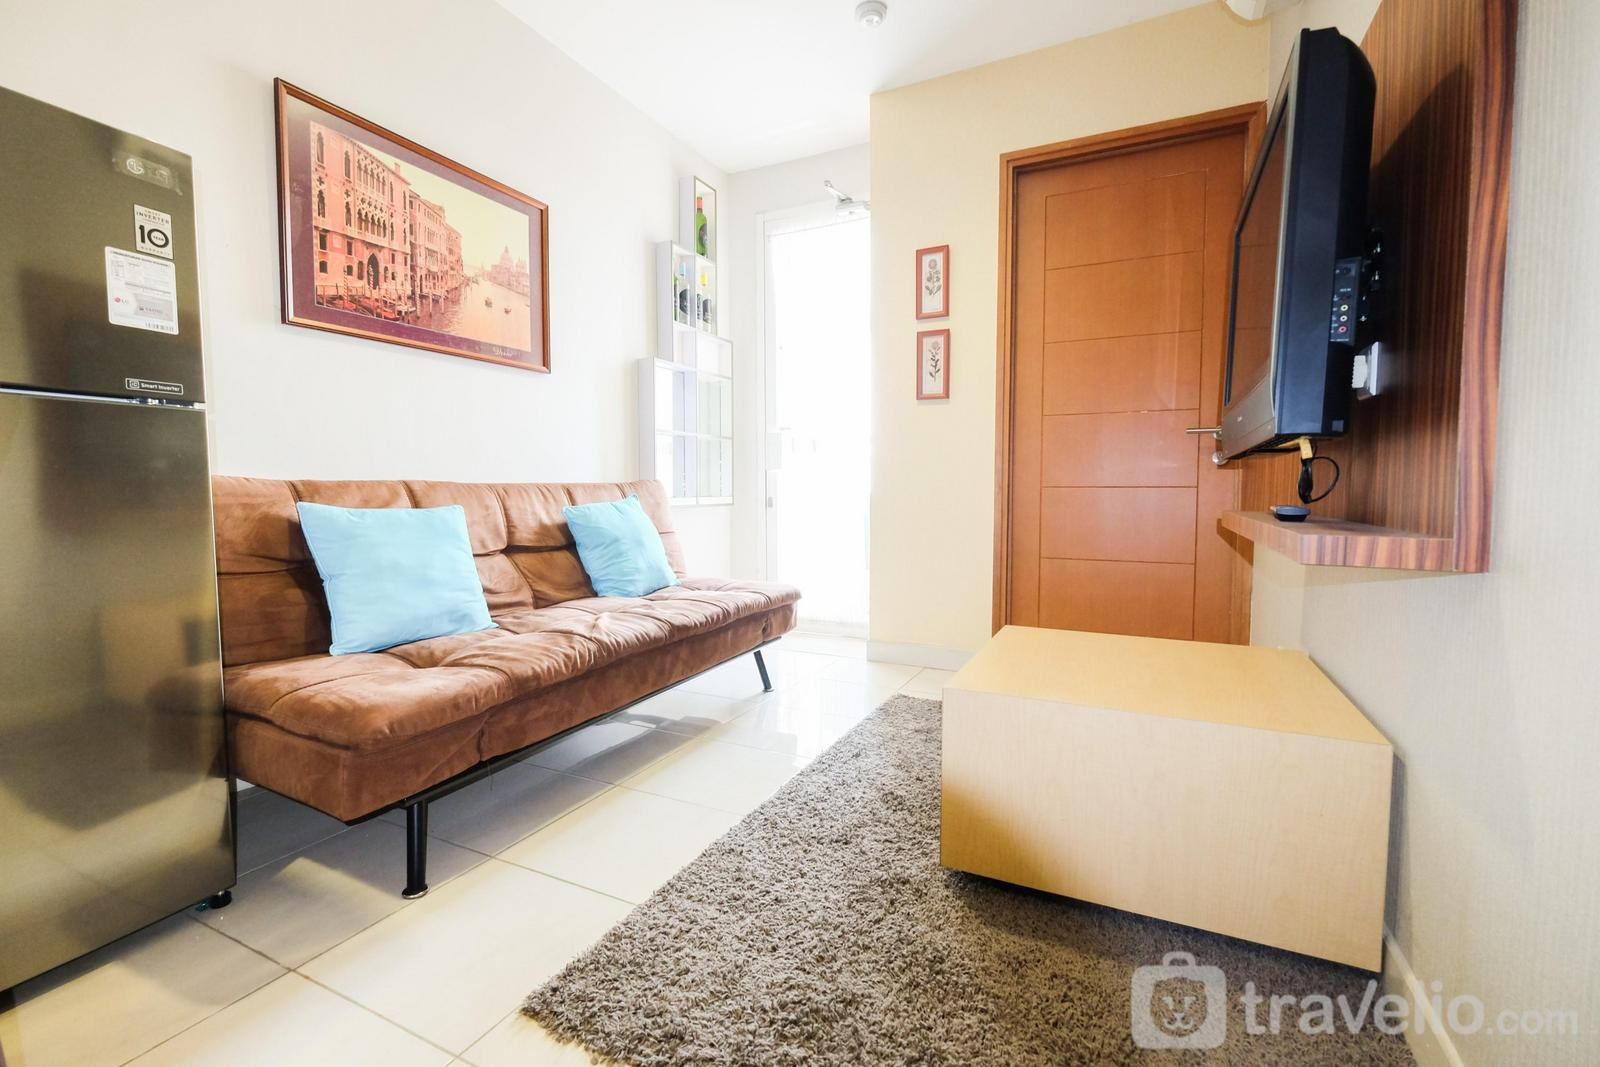 Cinere Bellevue Suites - 2BR Apartment at Cinere Bellevue Suites near Shopping Mall By Travelio